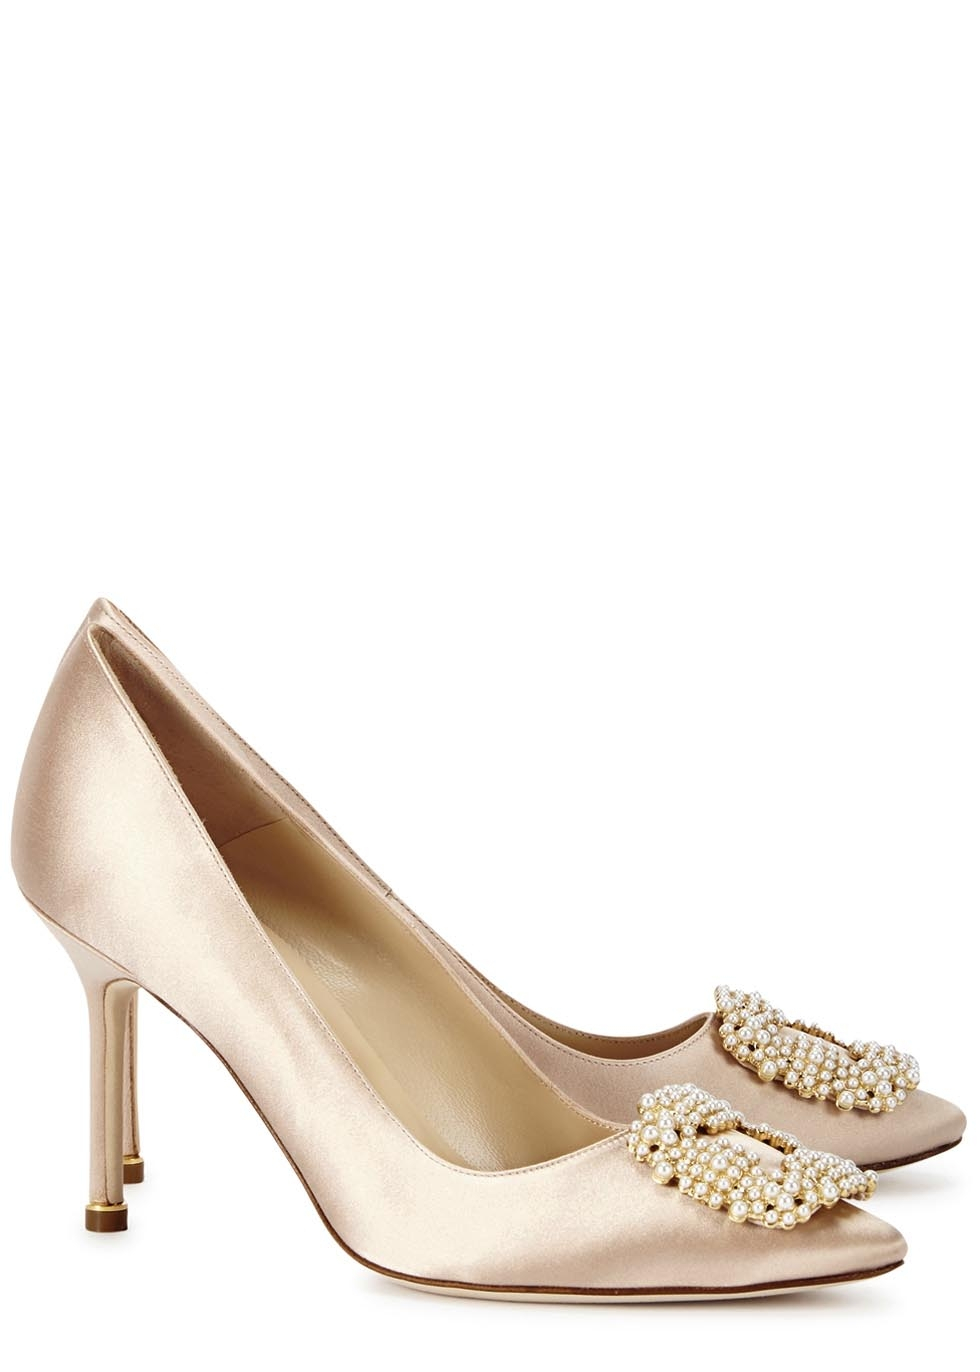 Manolo blahnik hangisipe champagne satin pumps in metallic for Shoes by manolo blahnik